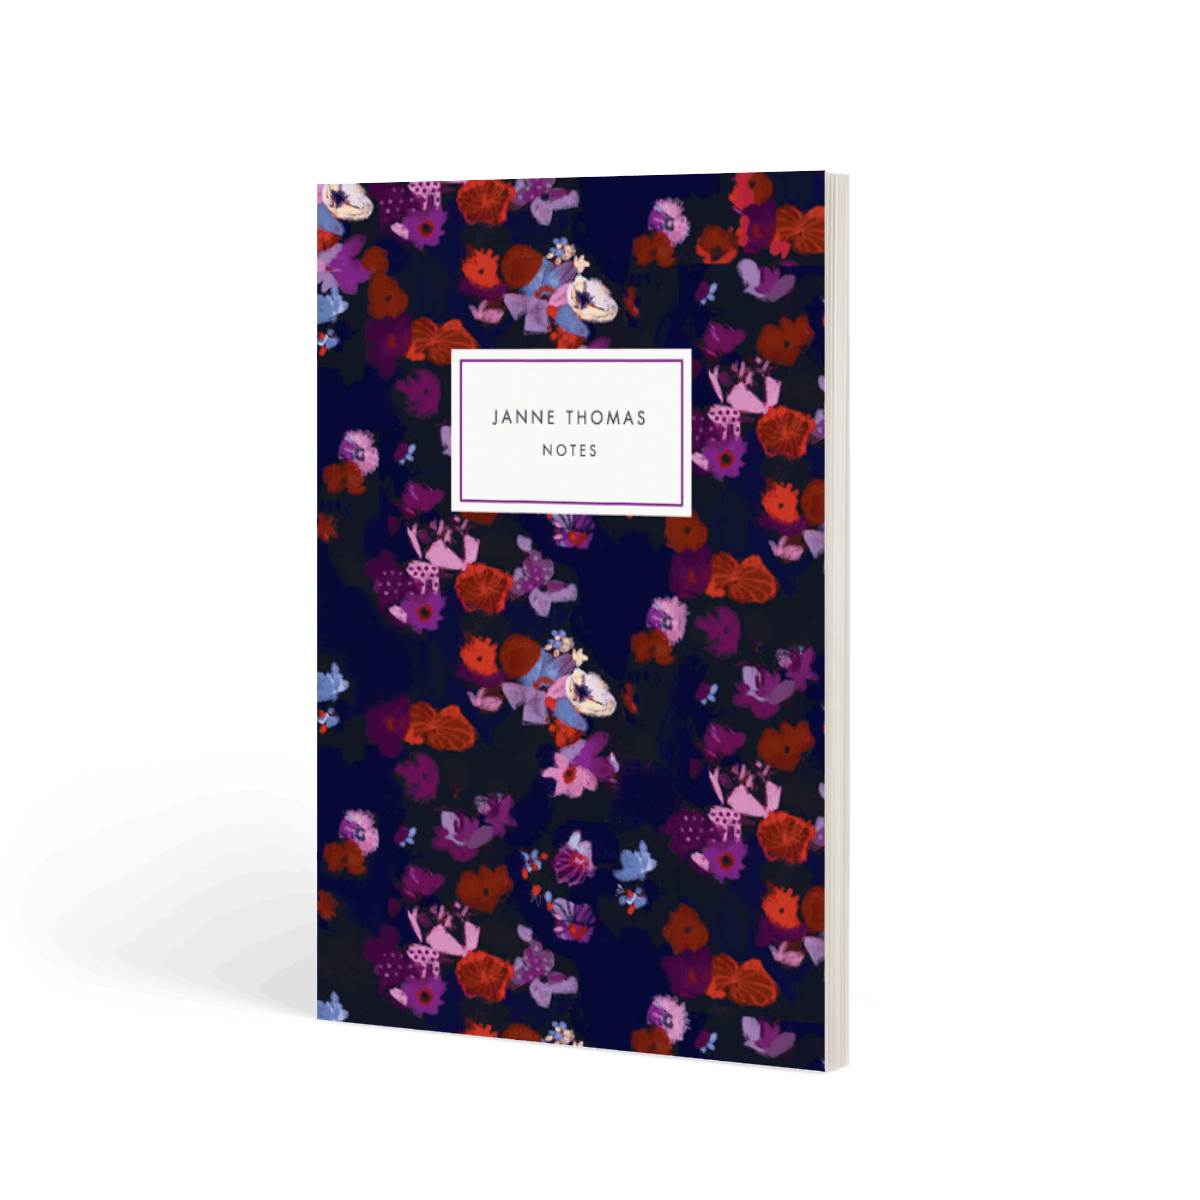 Https%3a%2f%2fwww.papier.com%2fproduct image%2f43709%2f6%2fpurple floral 7488 avant 1534505947.png?ixlib=rb 1.1